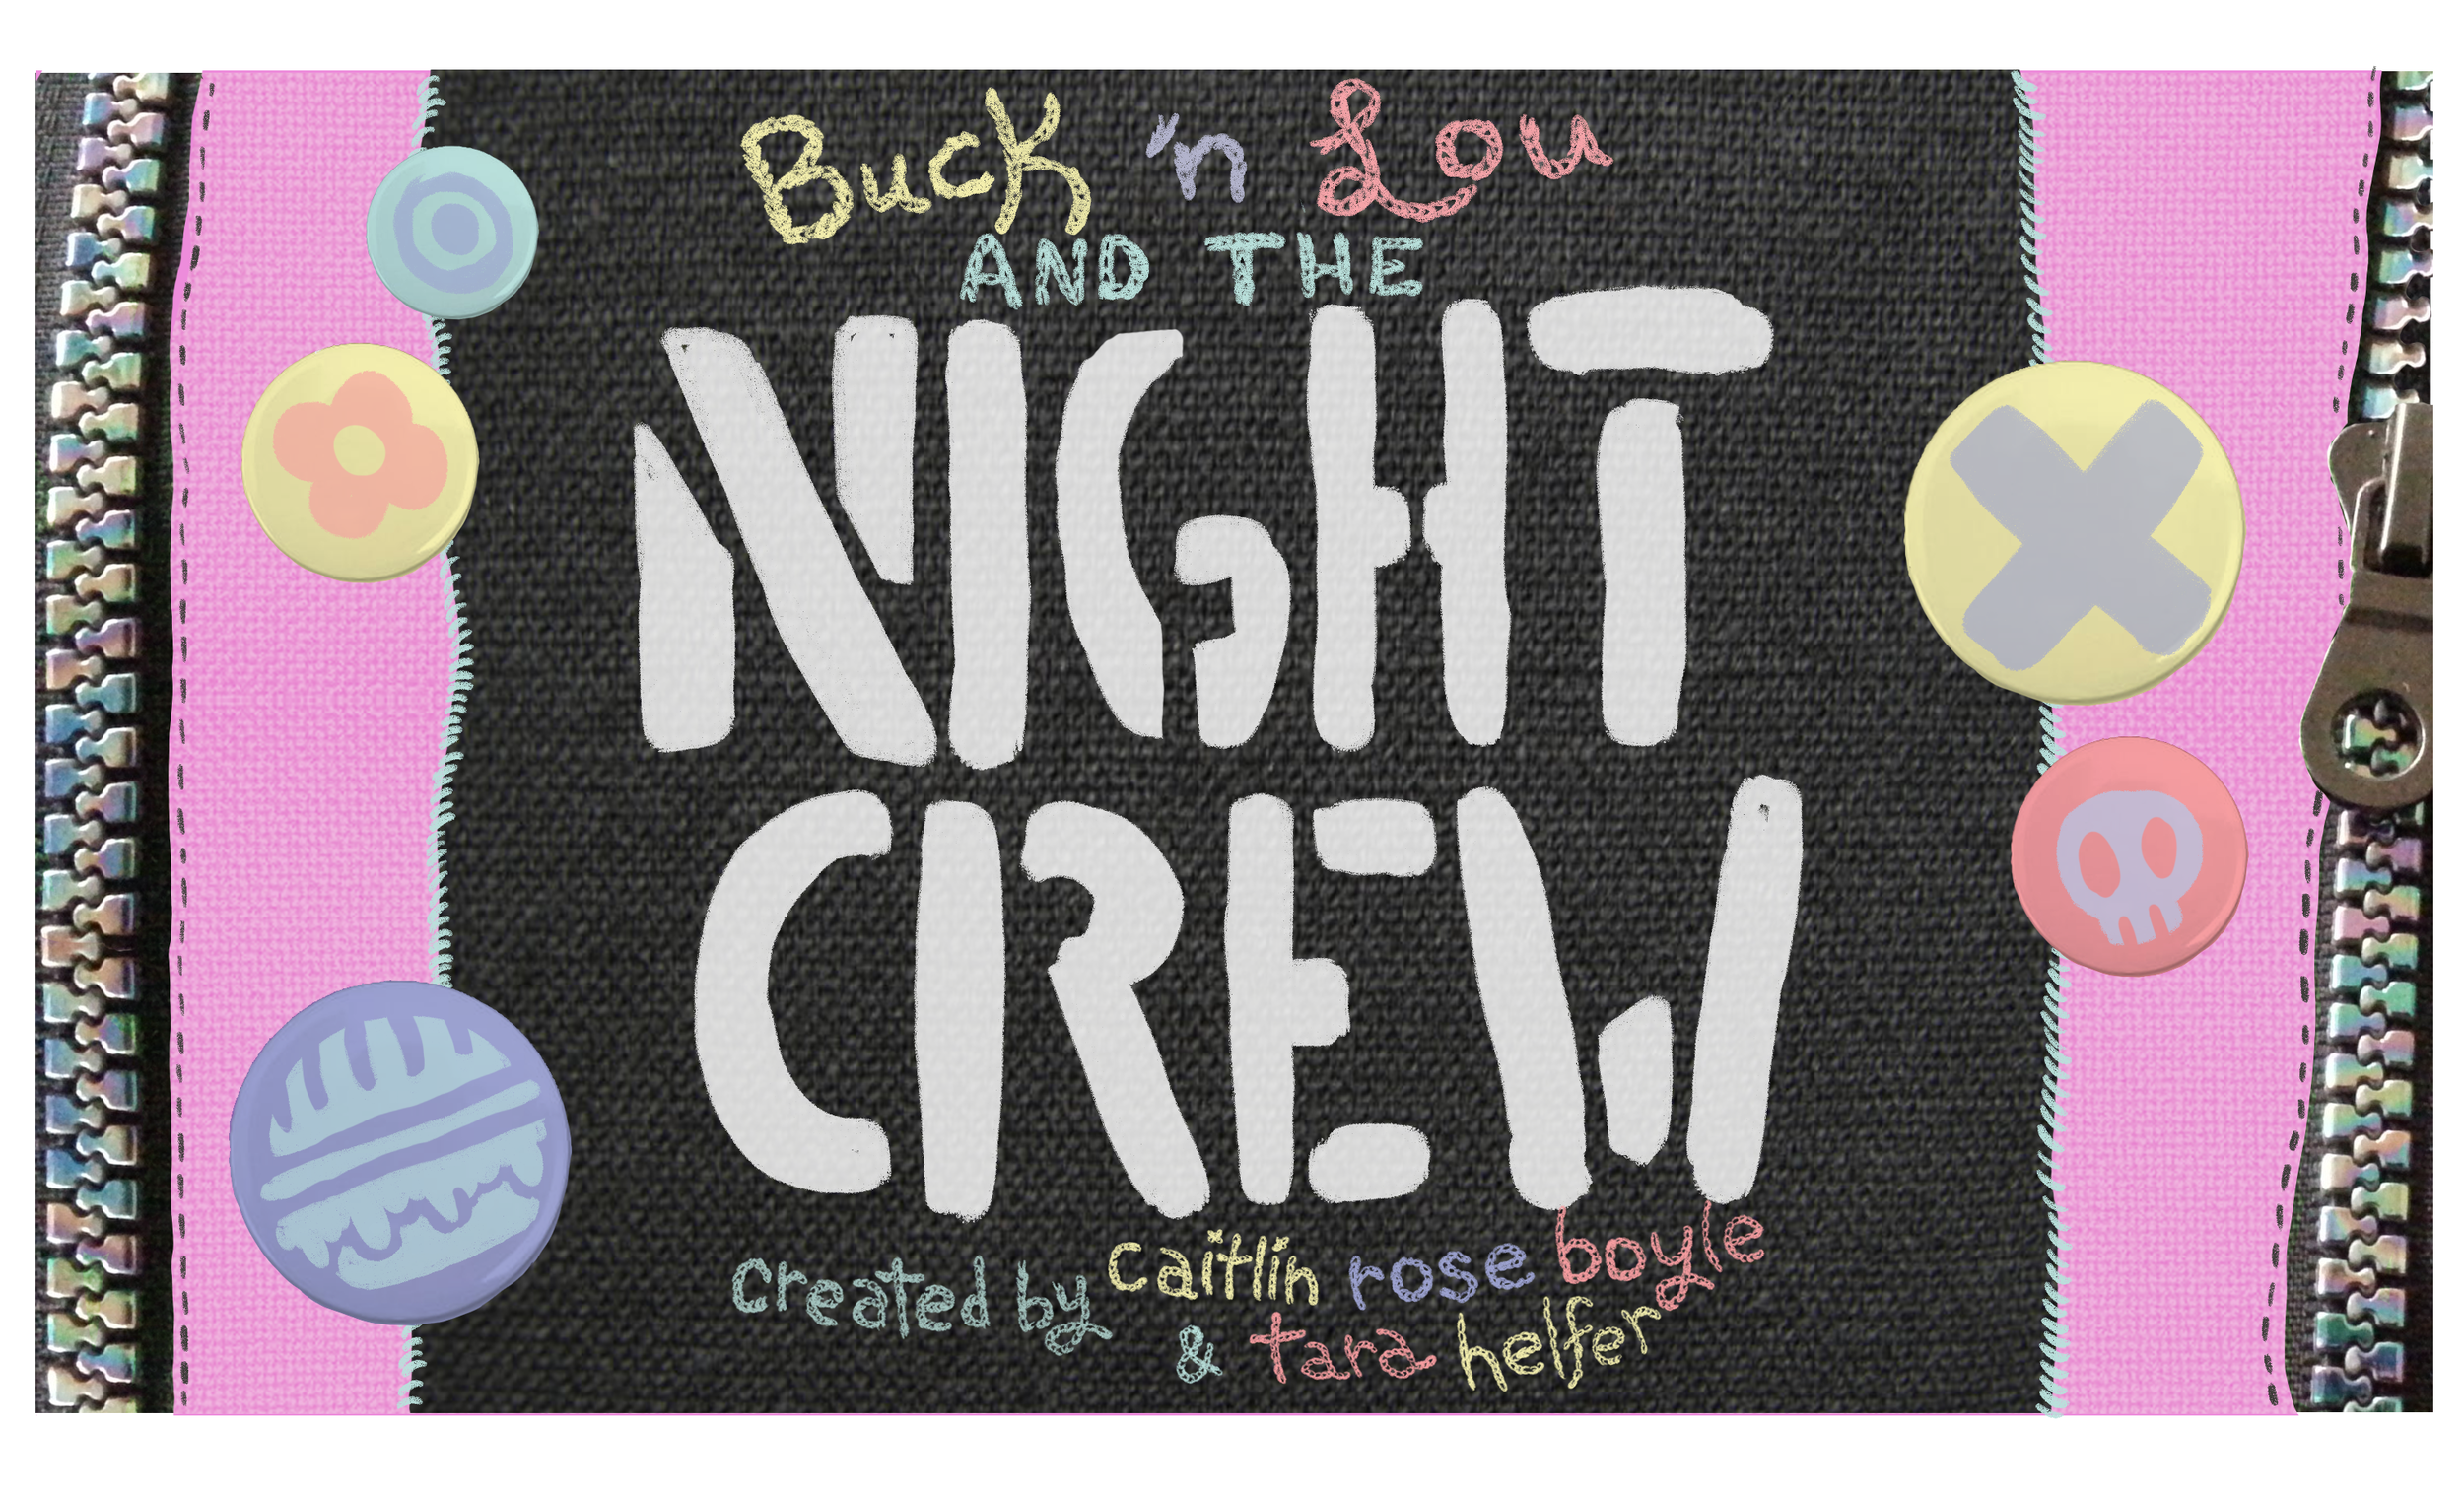 Night Crew title card design by Caitlin Rose Boyle, final version by Tinman Creative Studios